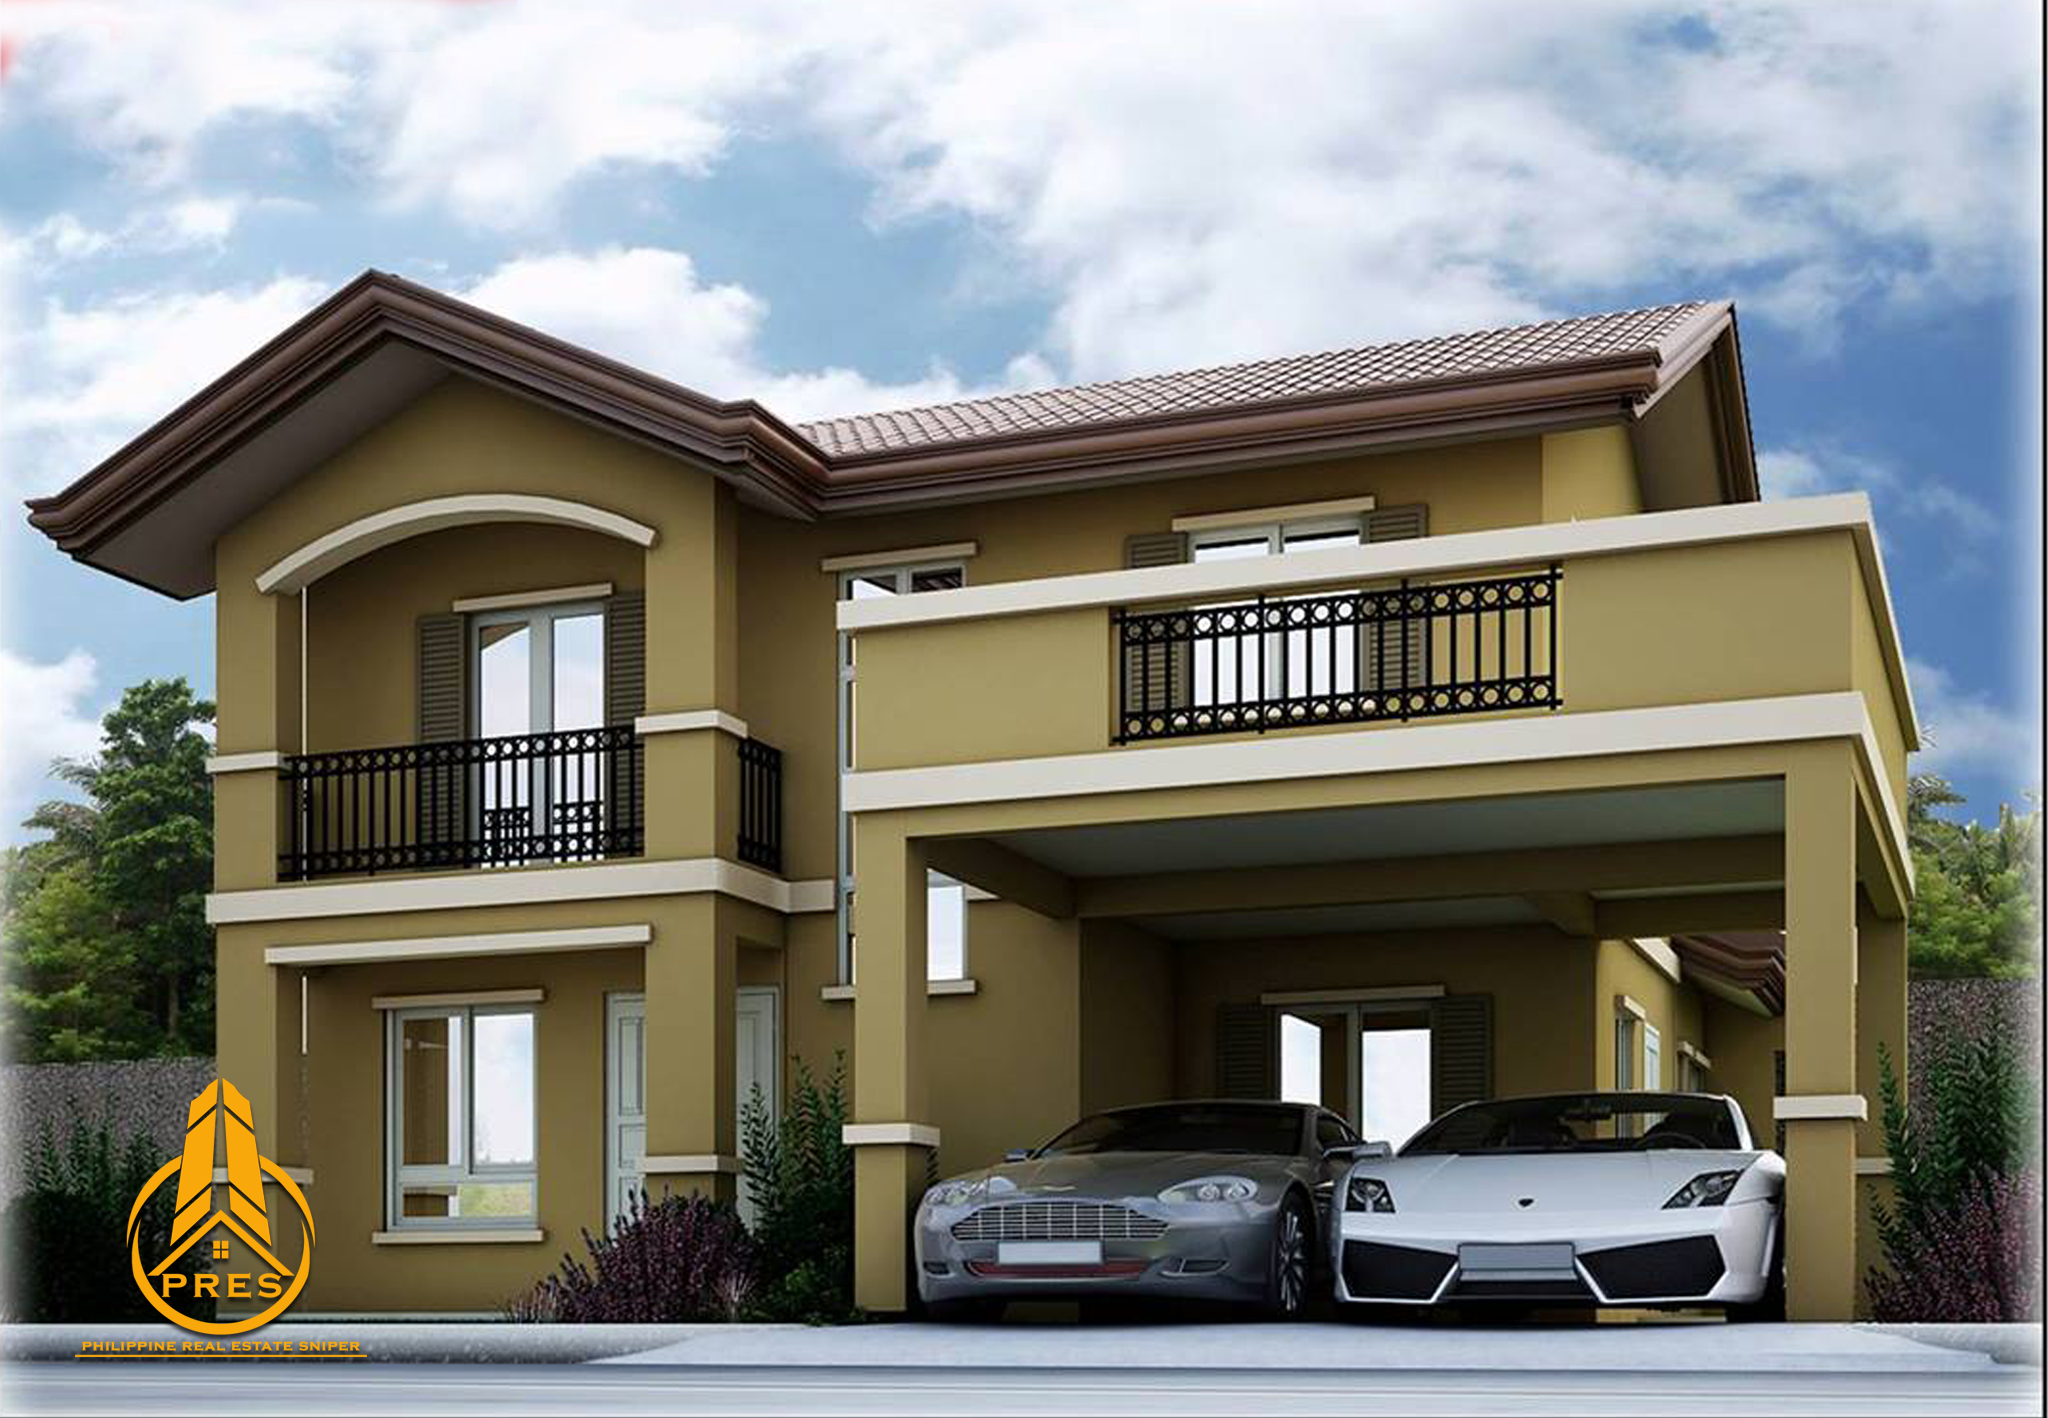 3 Bedroom Townhouse For Rent Camella Bacolod South Greta Model Pres